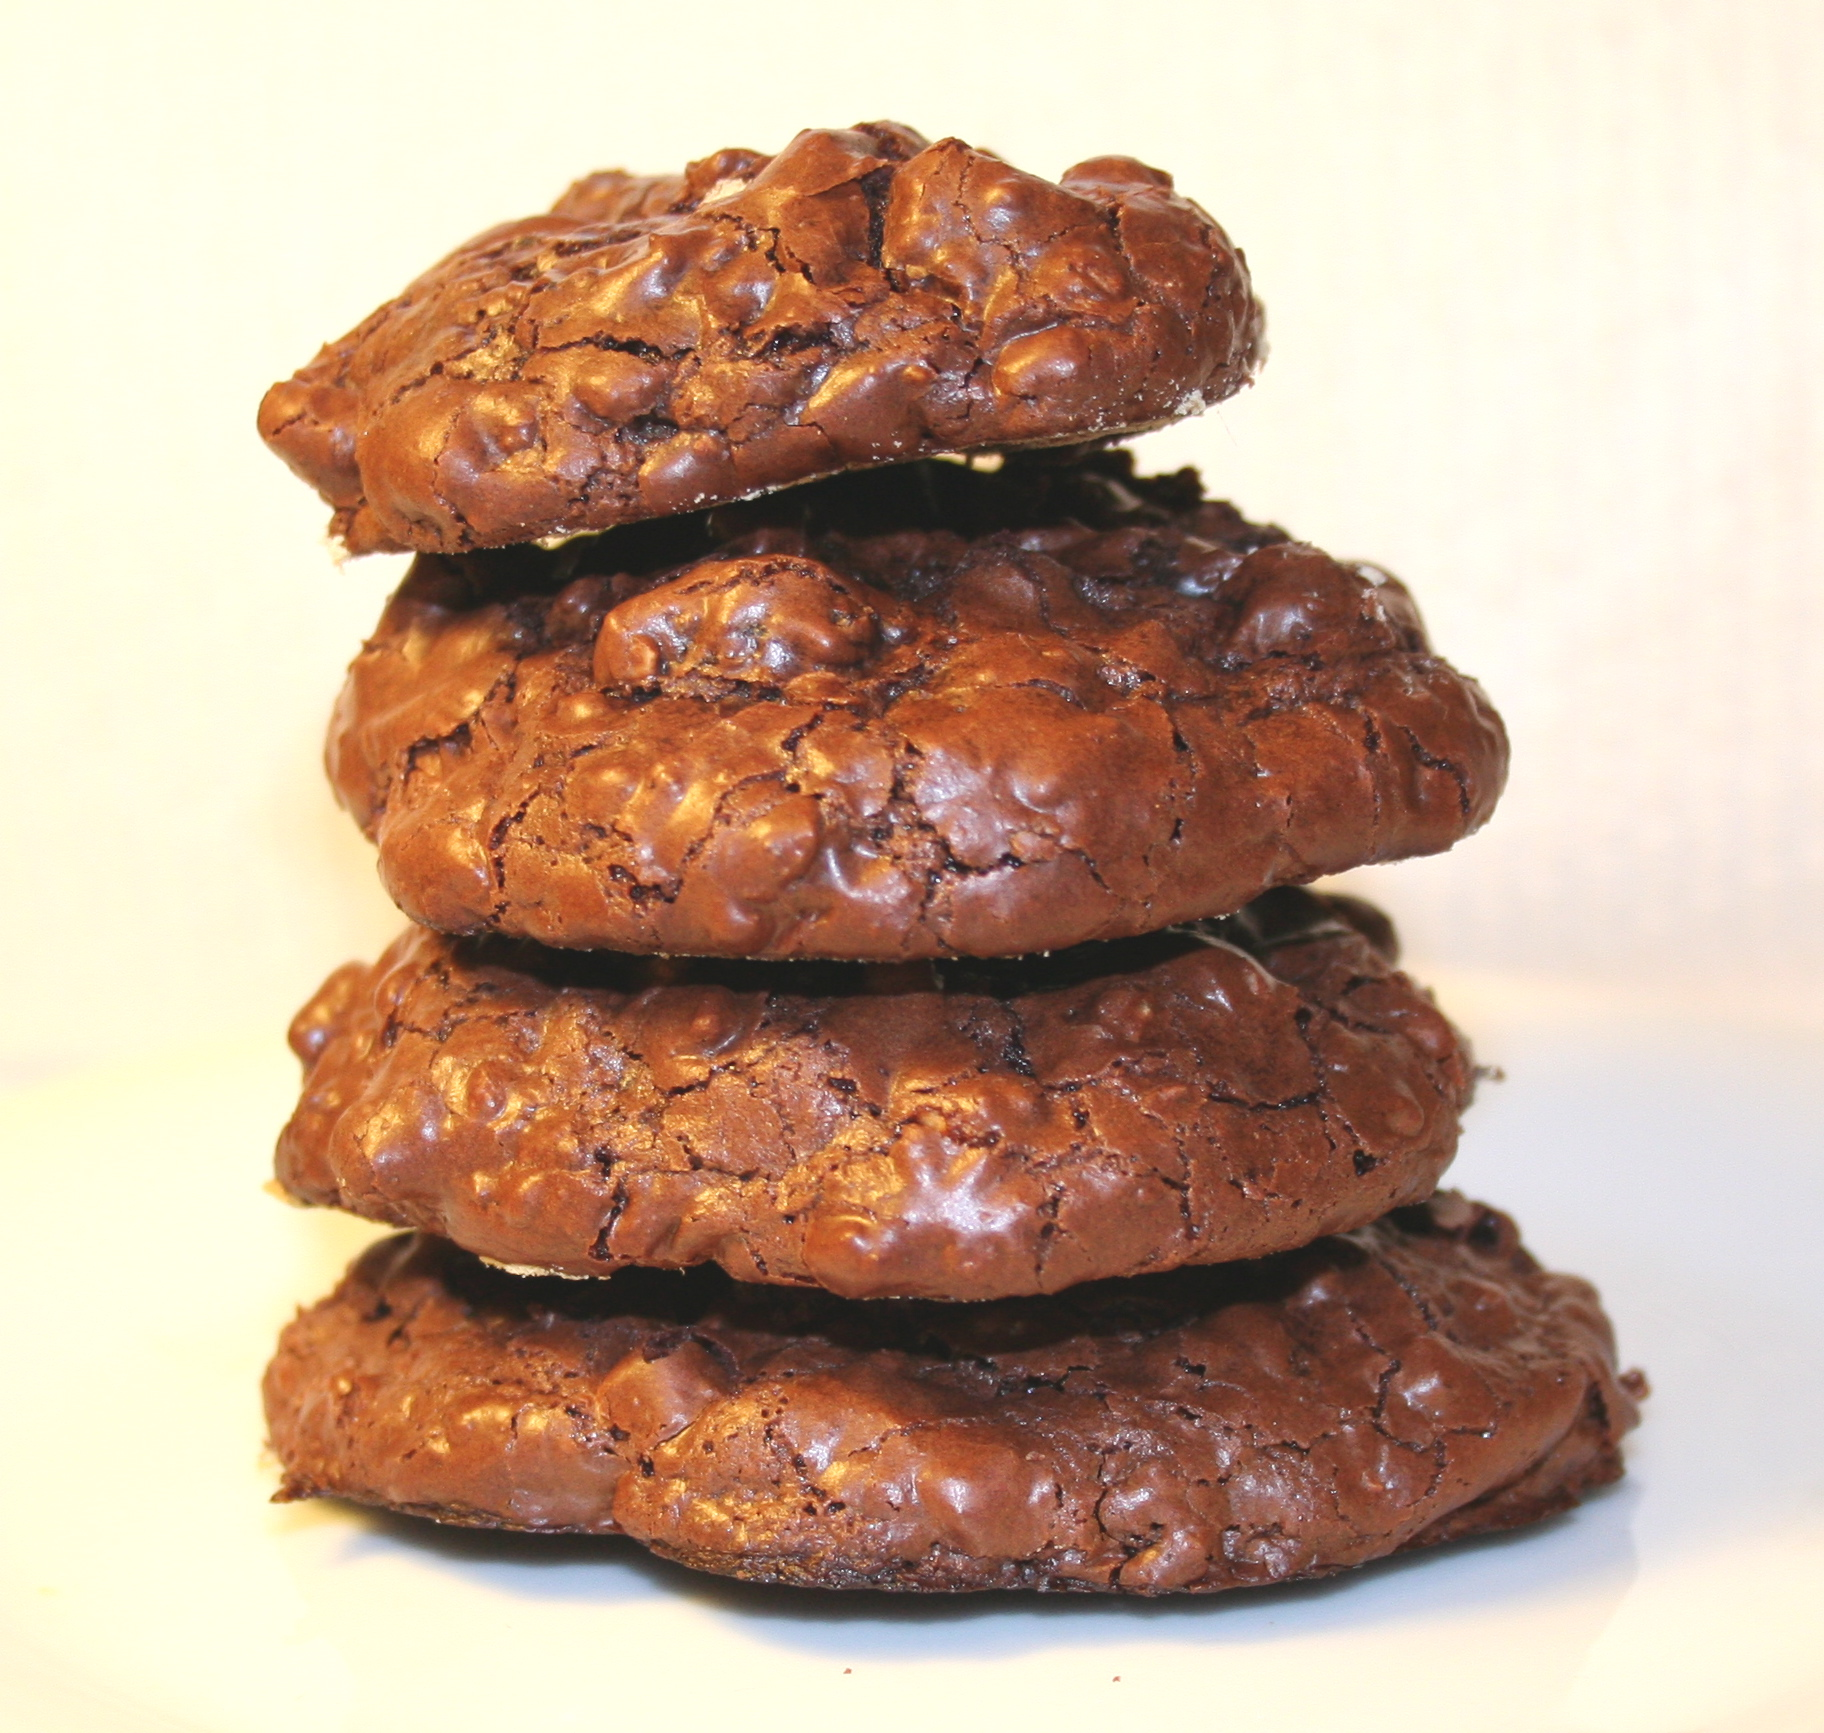 Chewy chocolate cookies with Rum-soaked raisins